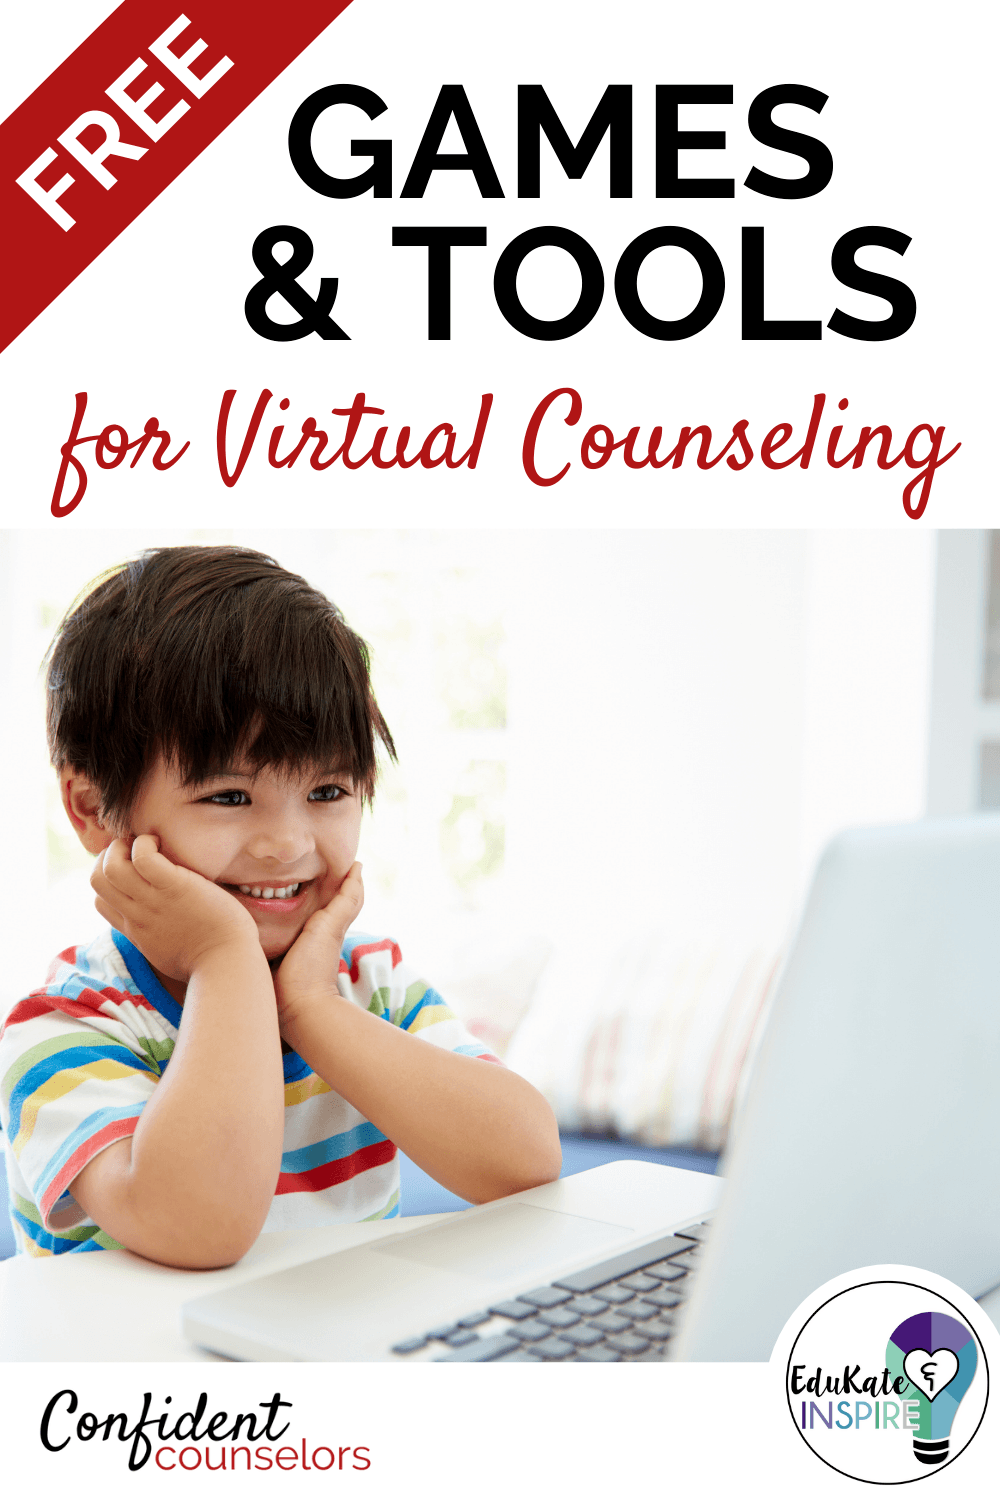 Free games and tools for virtual counseling